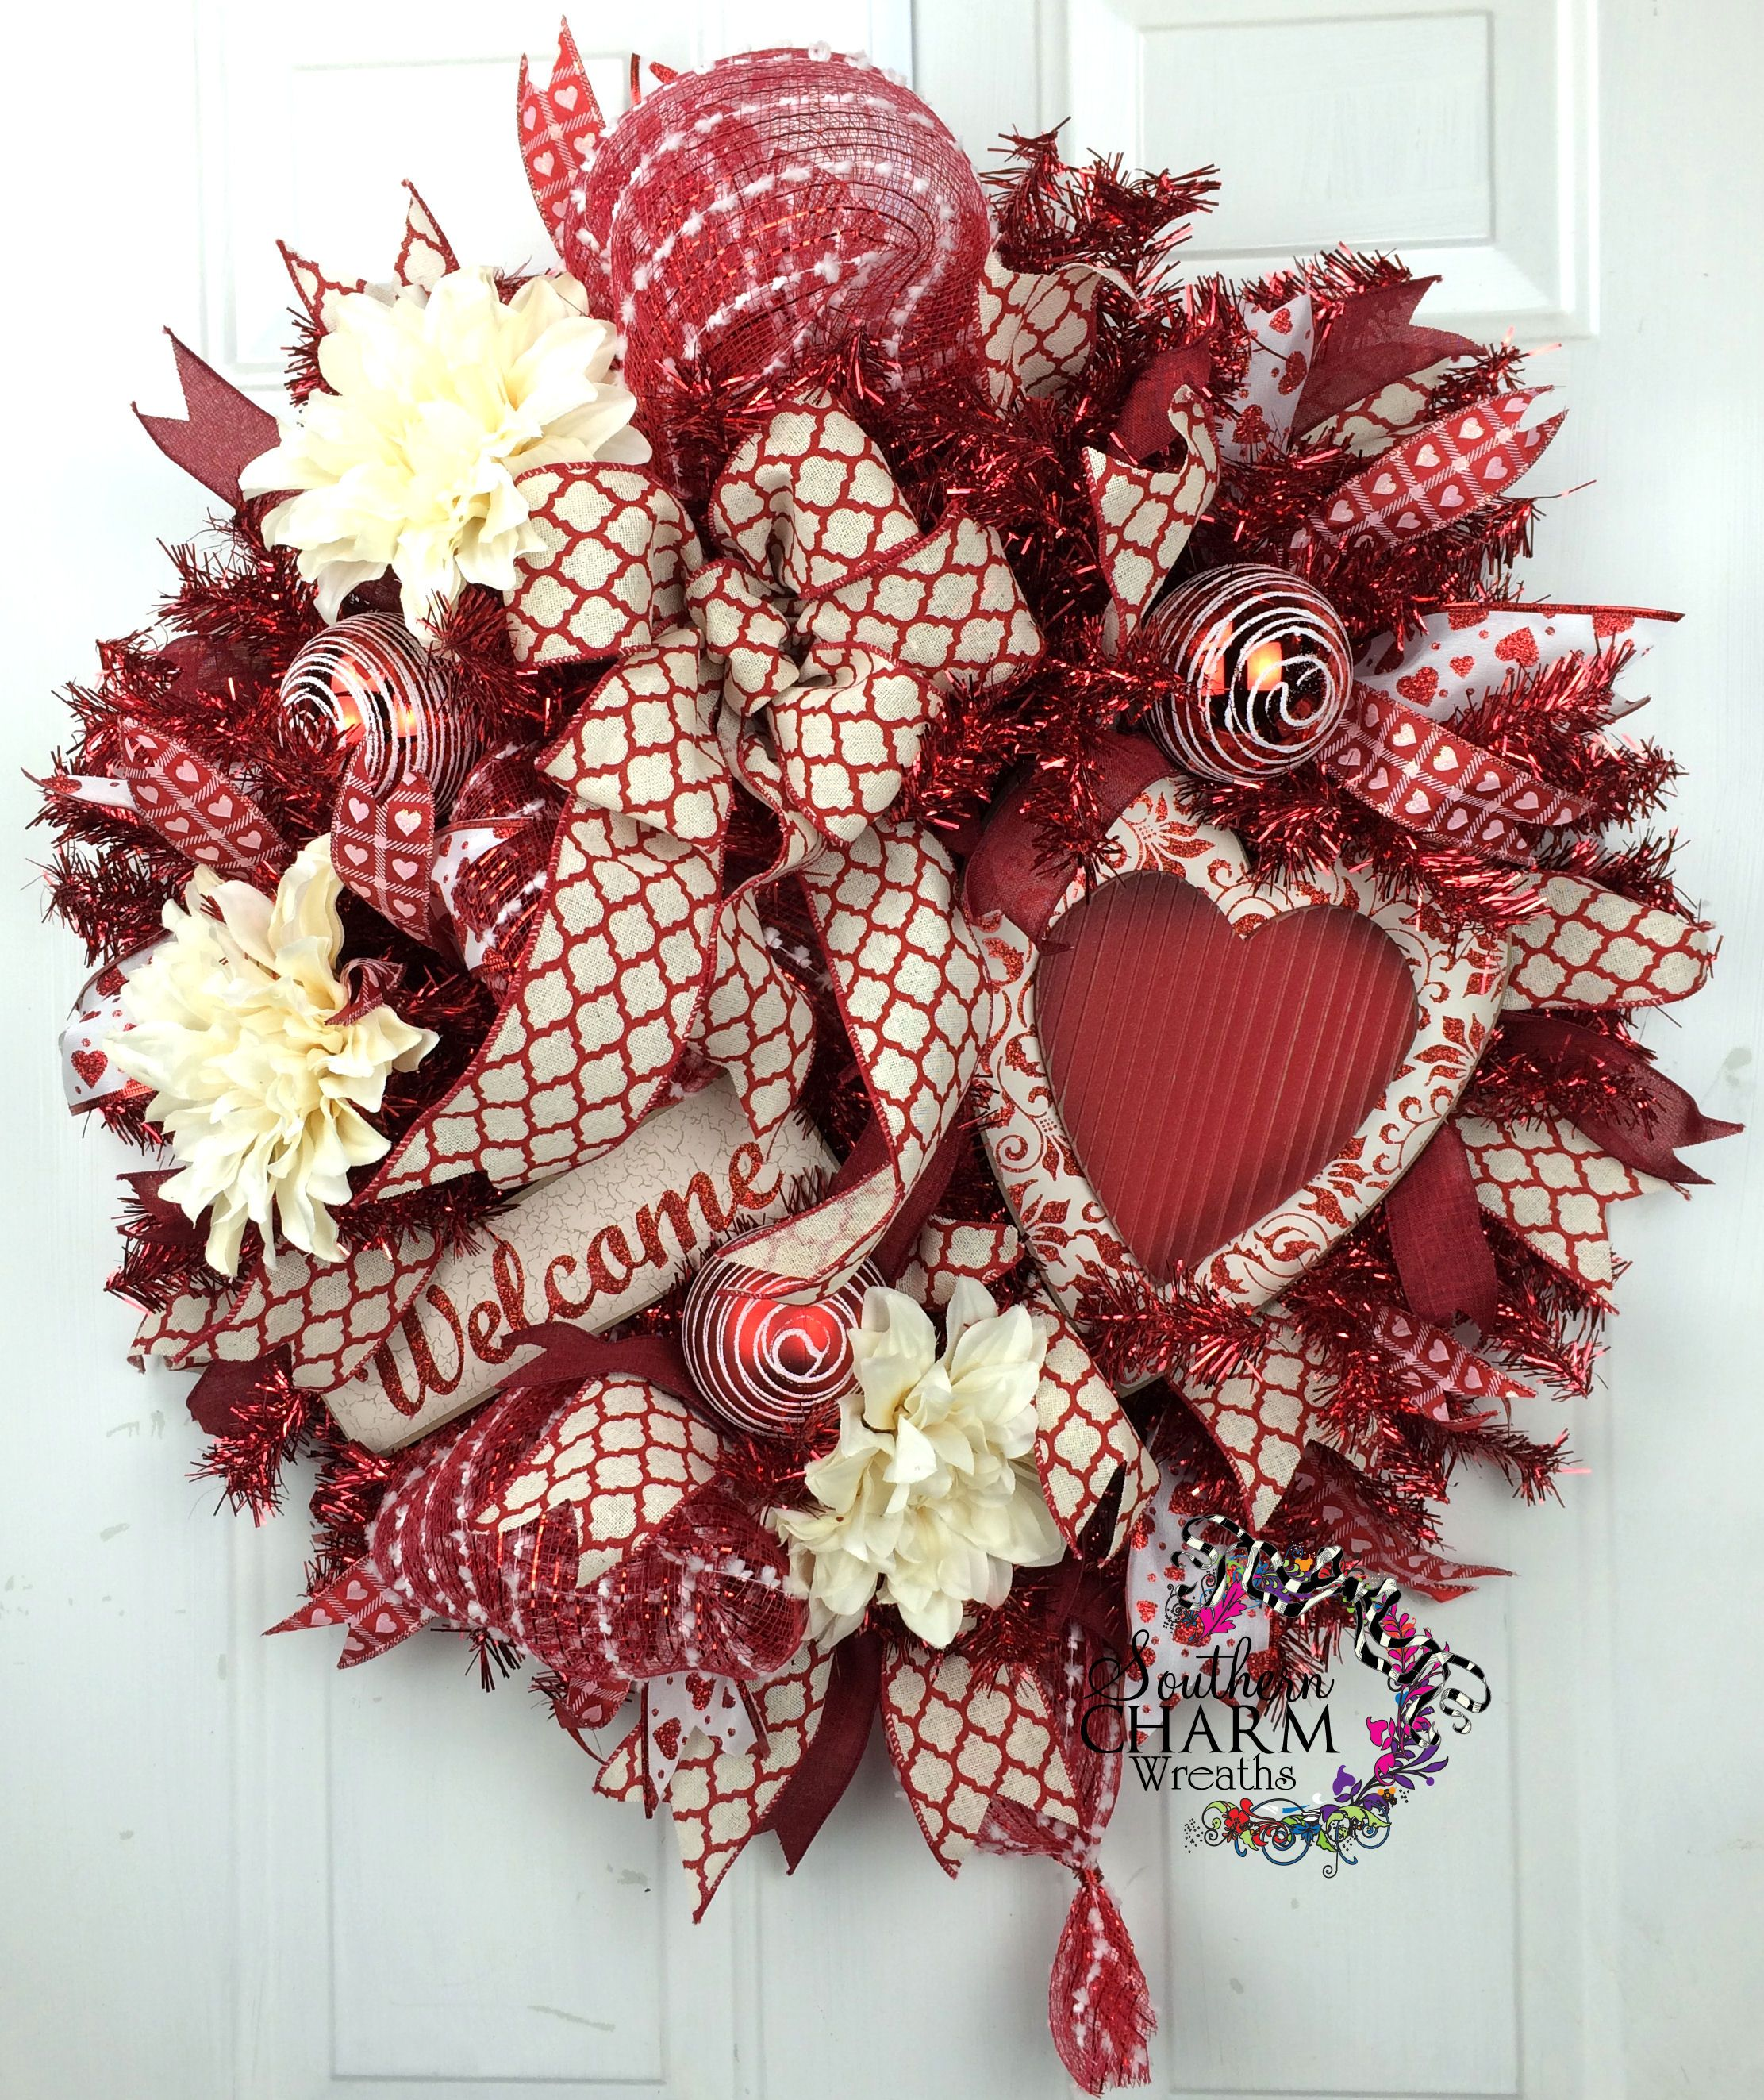 Deco Mesh Valentines Wreath with Red White Heart Welcome Sign -Door Wreath -Valentines Day Decor -Deco Mesh Wreath by southerncharmwreaths.com #valentinesday #door #wreath